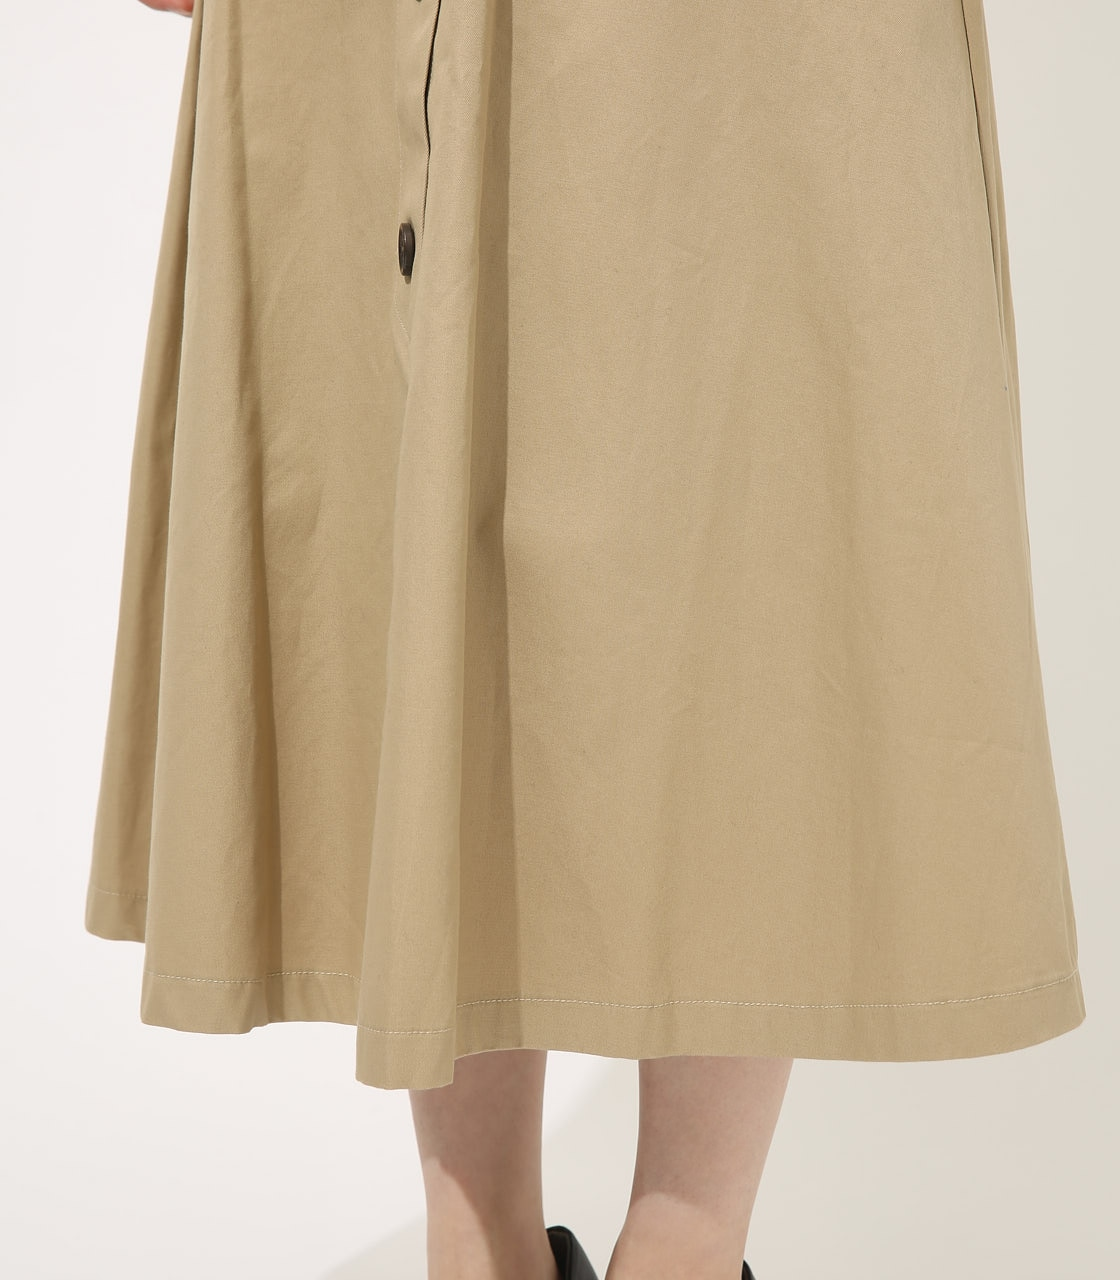 【AZUL BY MOUSSY】TRENCH FLARE SKIRT 詳細画像 BEG 9